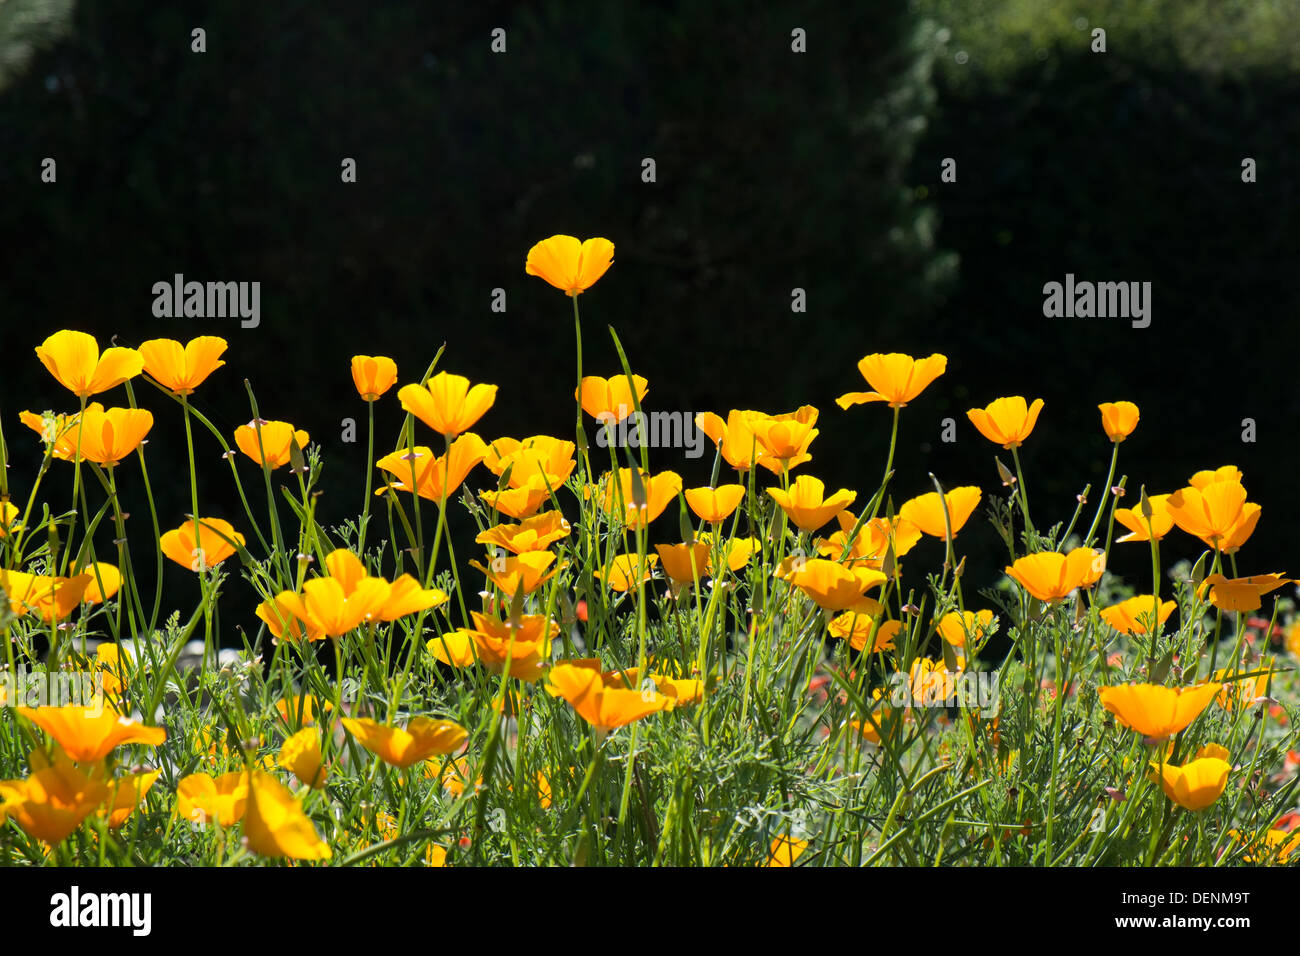 Eschscholzia californica, California poppy, backlit blooms in late summer. - Stock Image